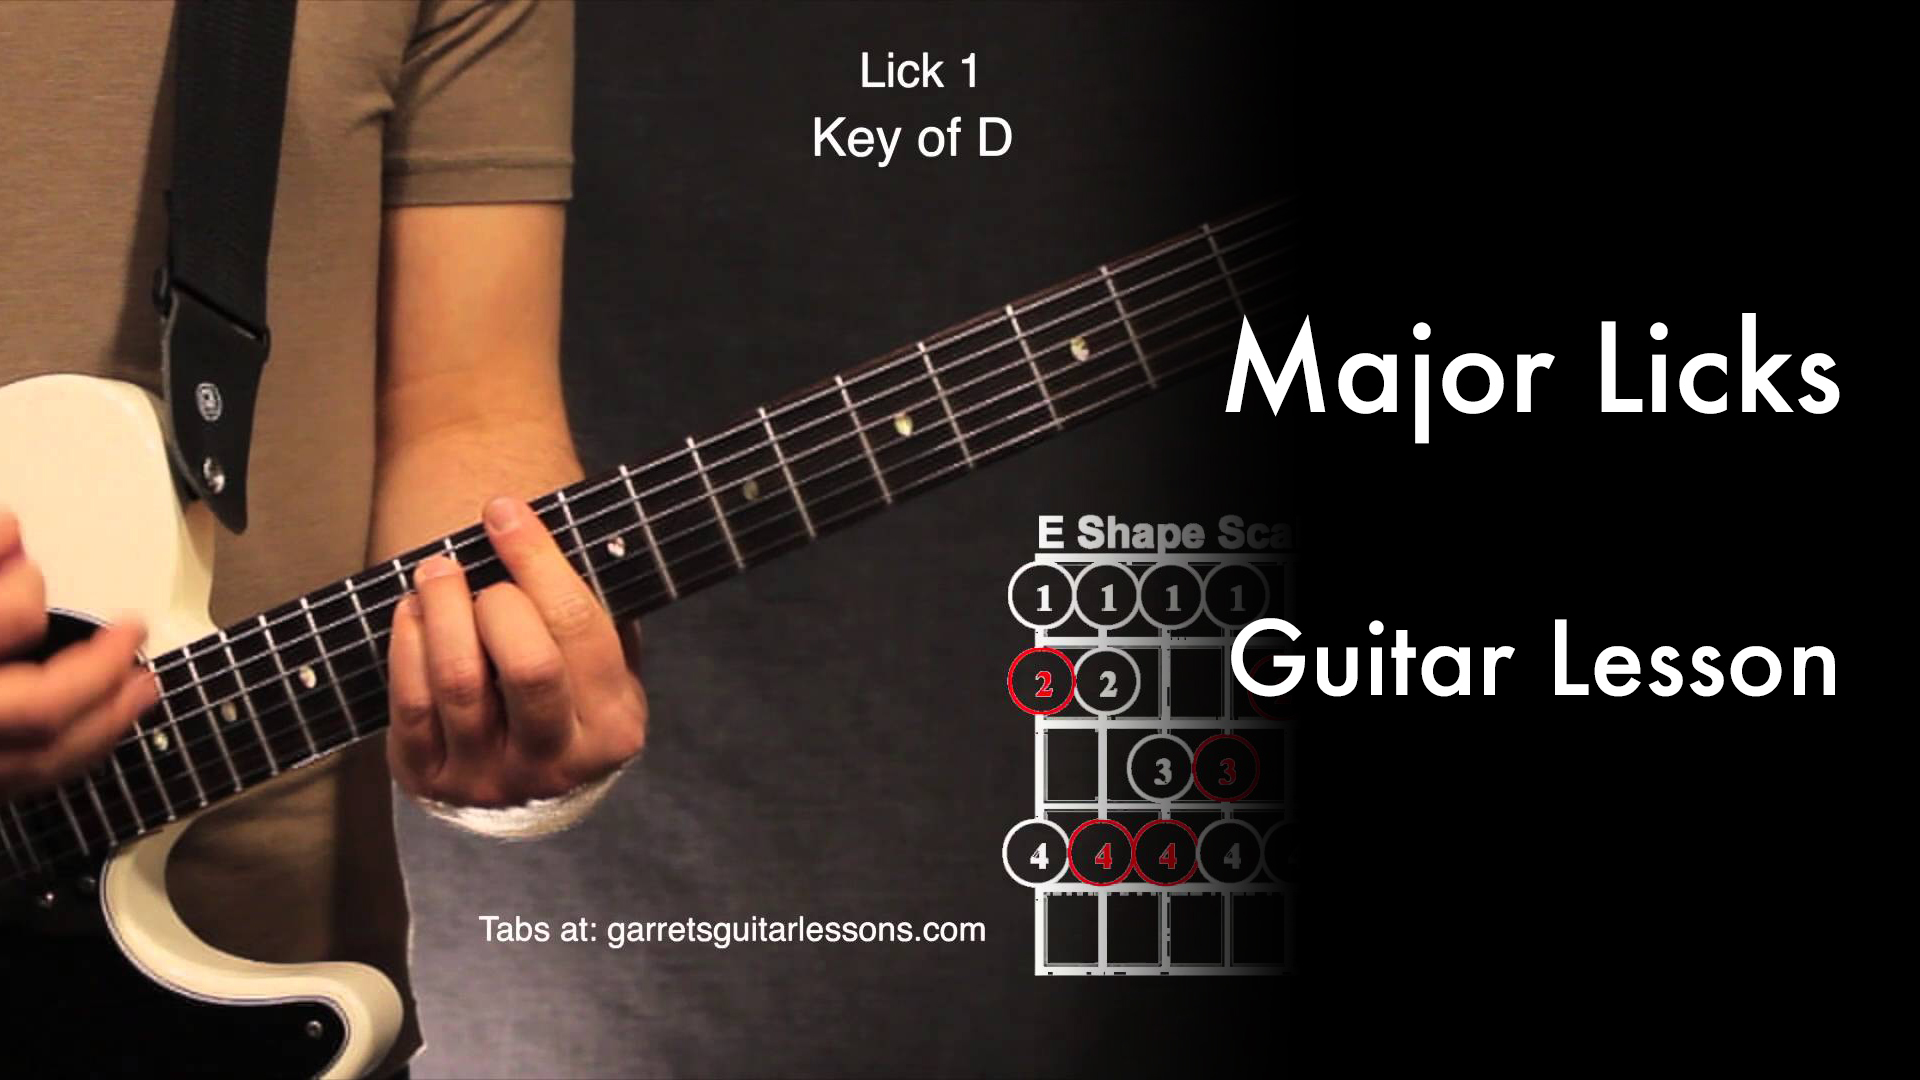 Major Licks • Garret's Guitar Lessons